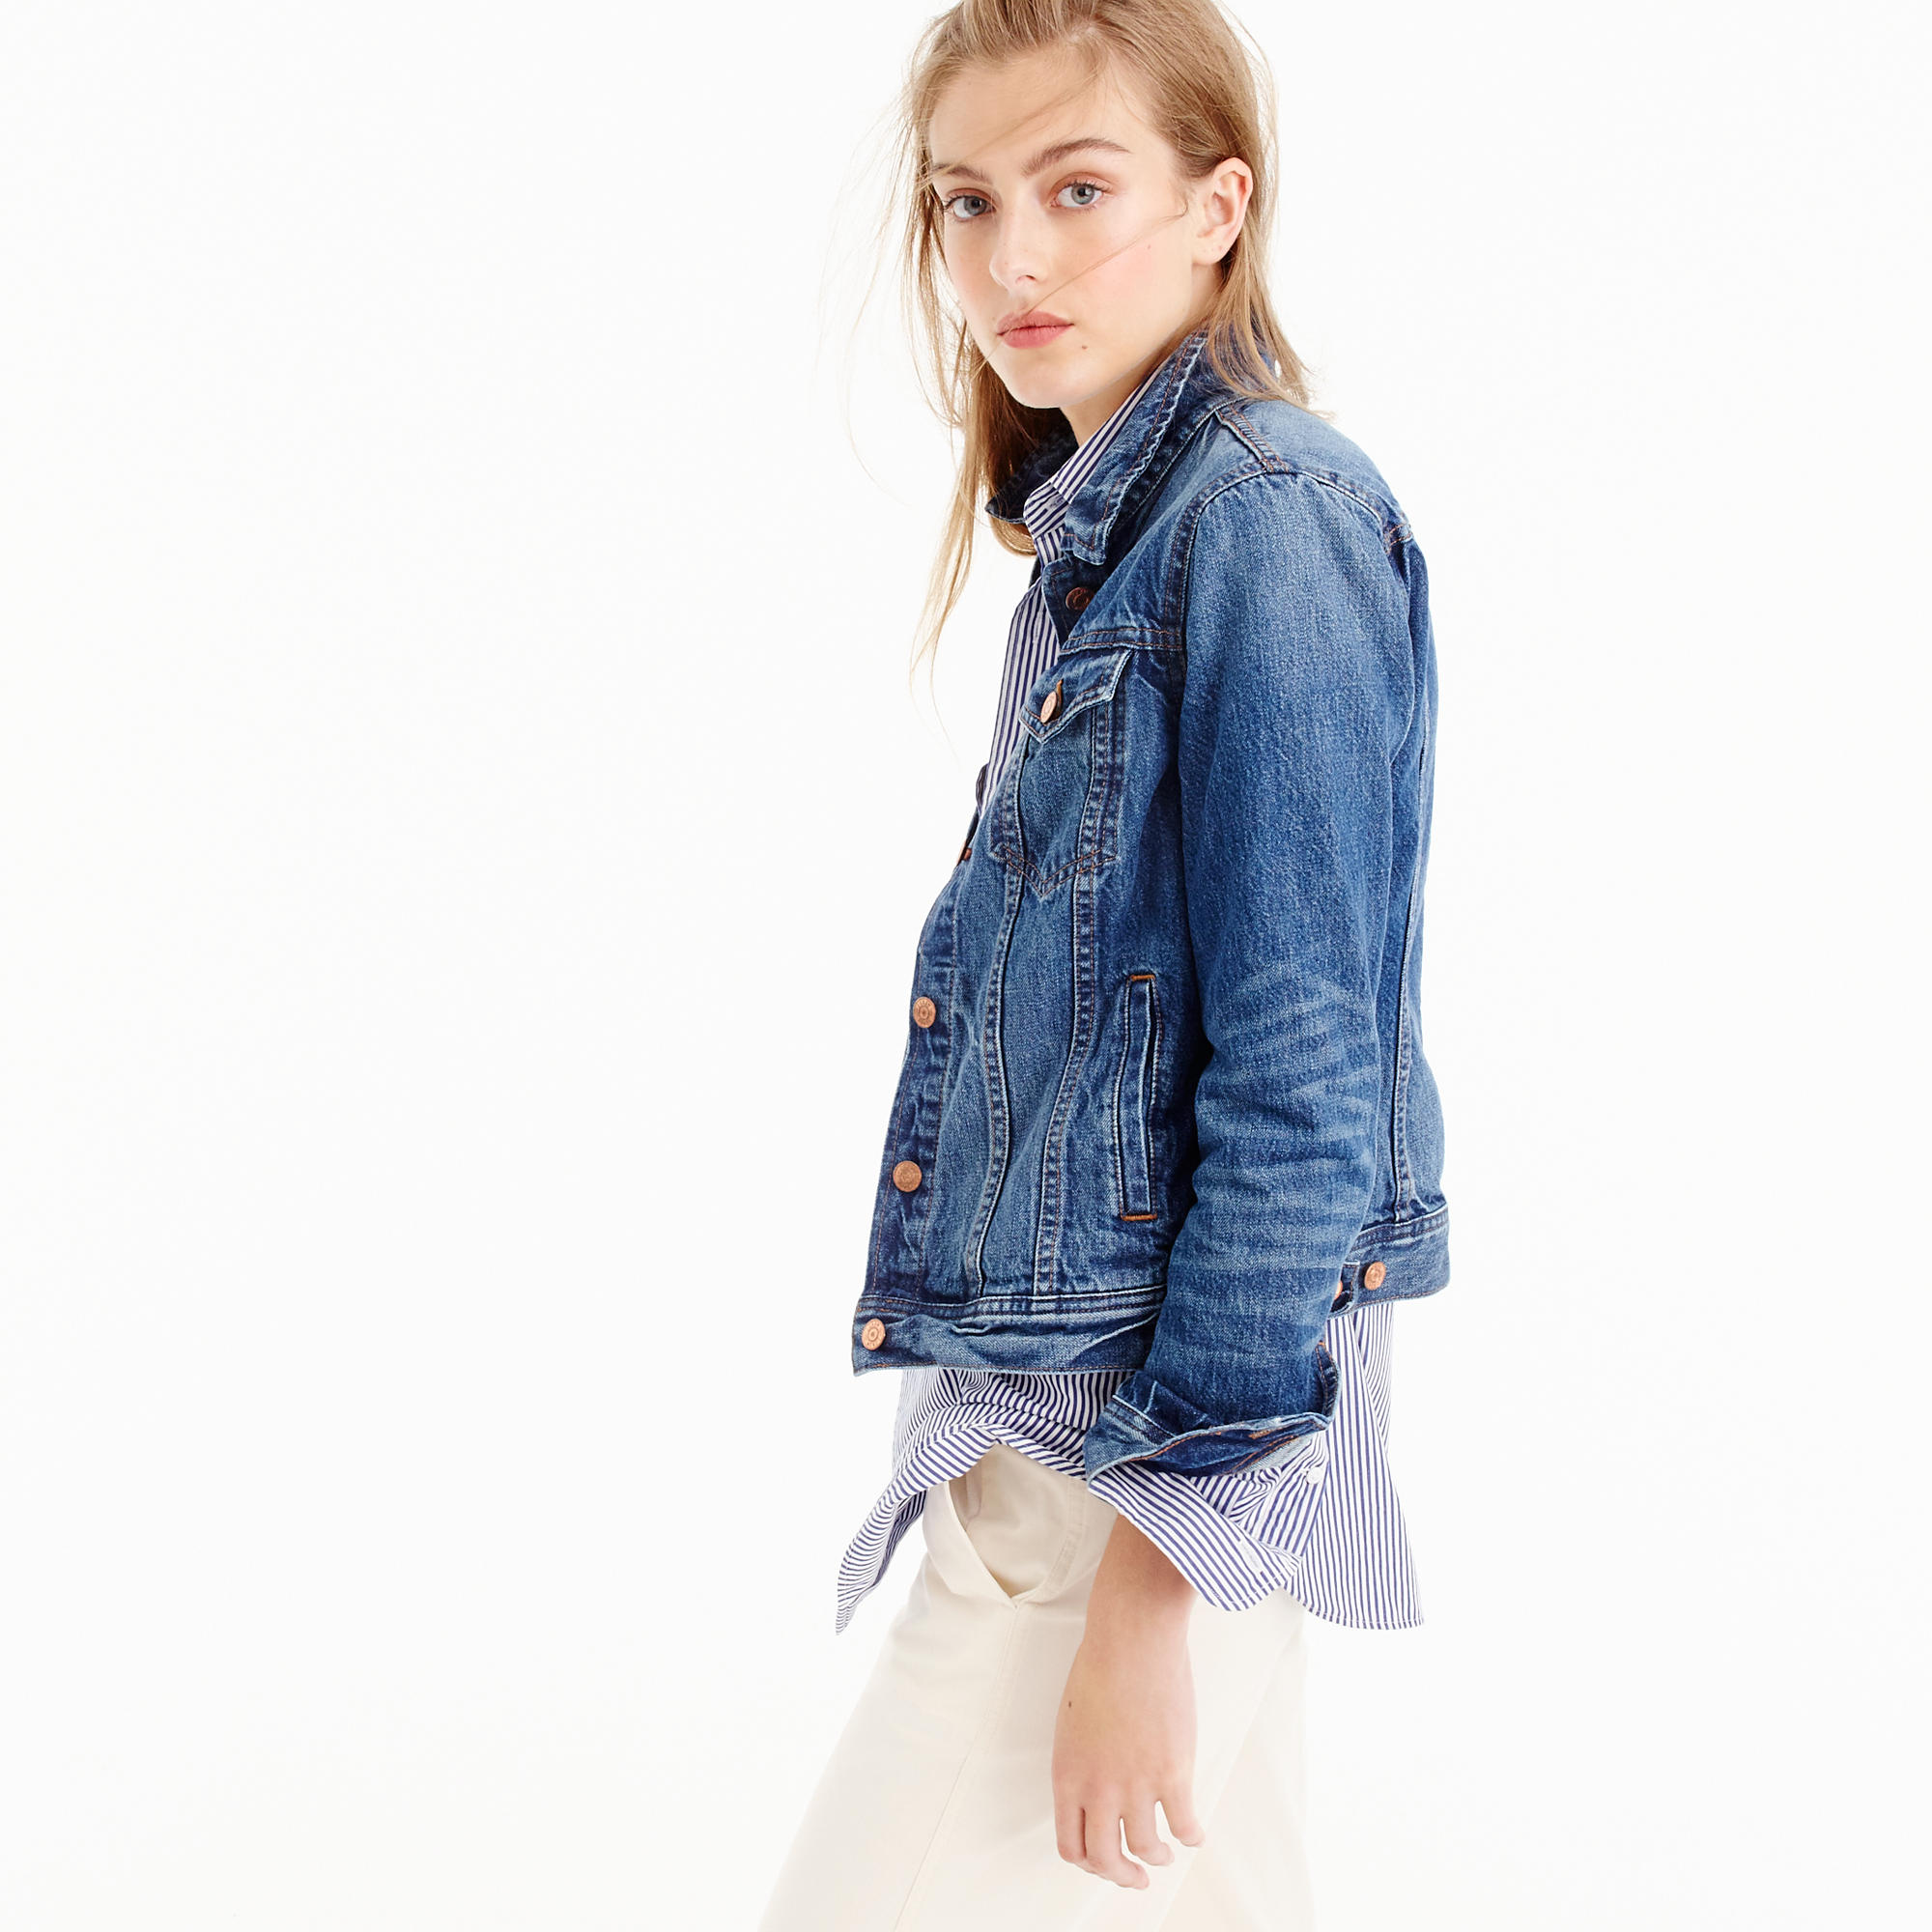 A model wearing a J.Crew denim jacket and white pants